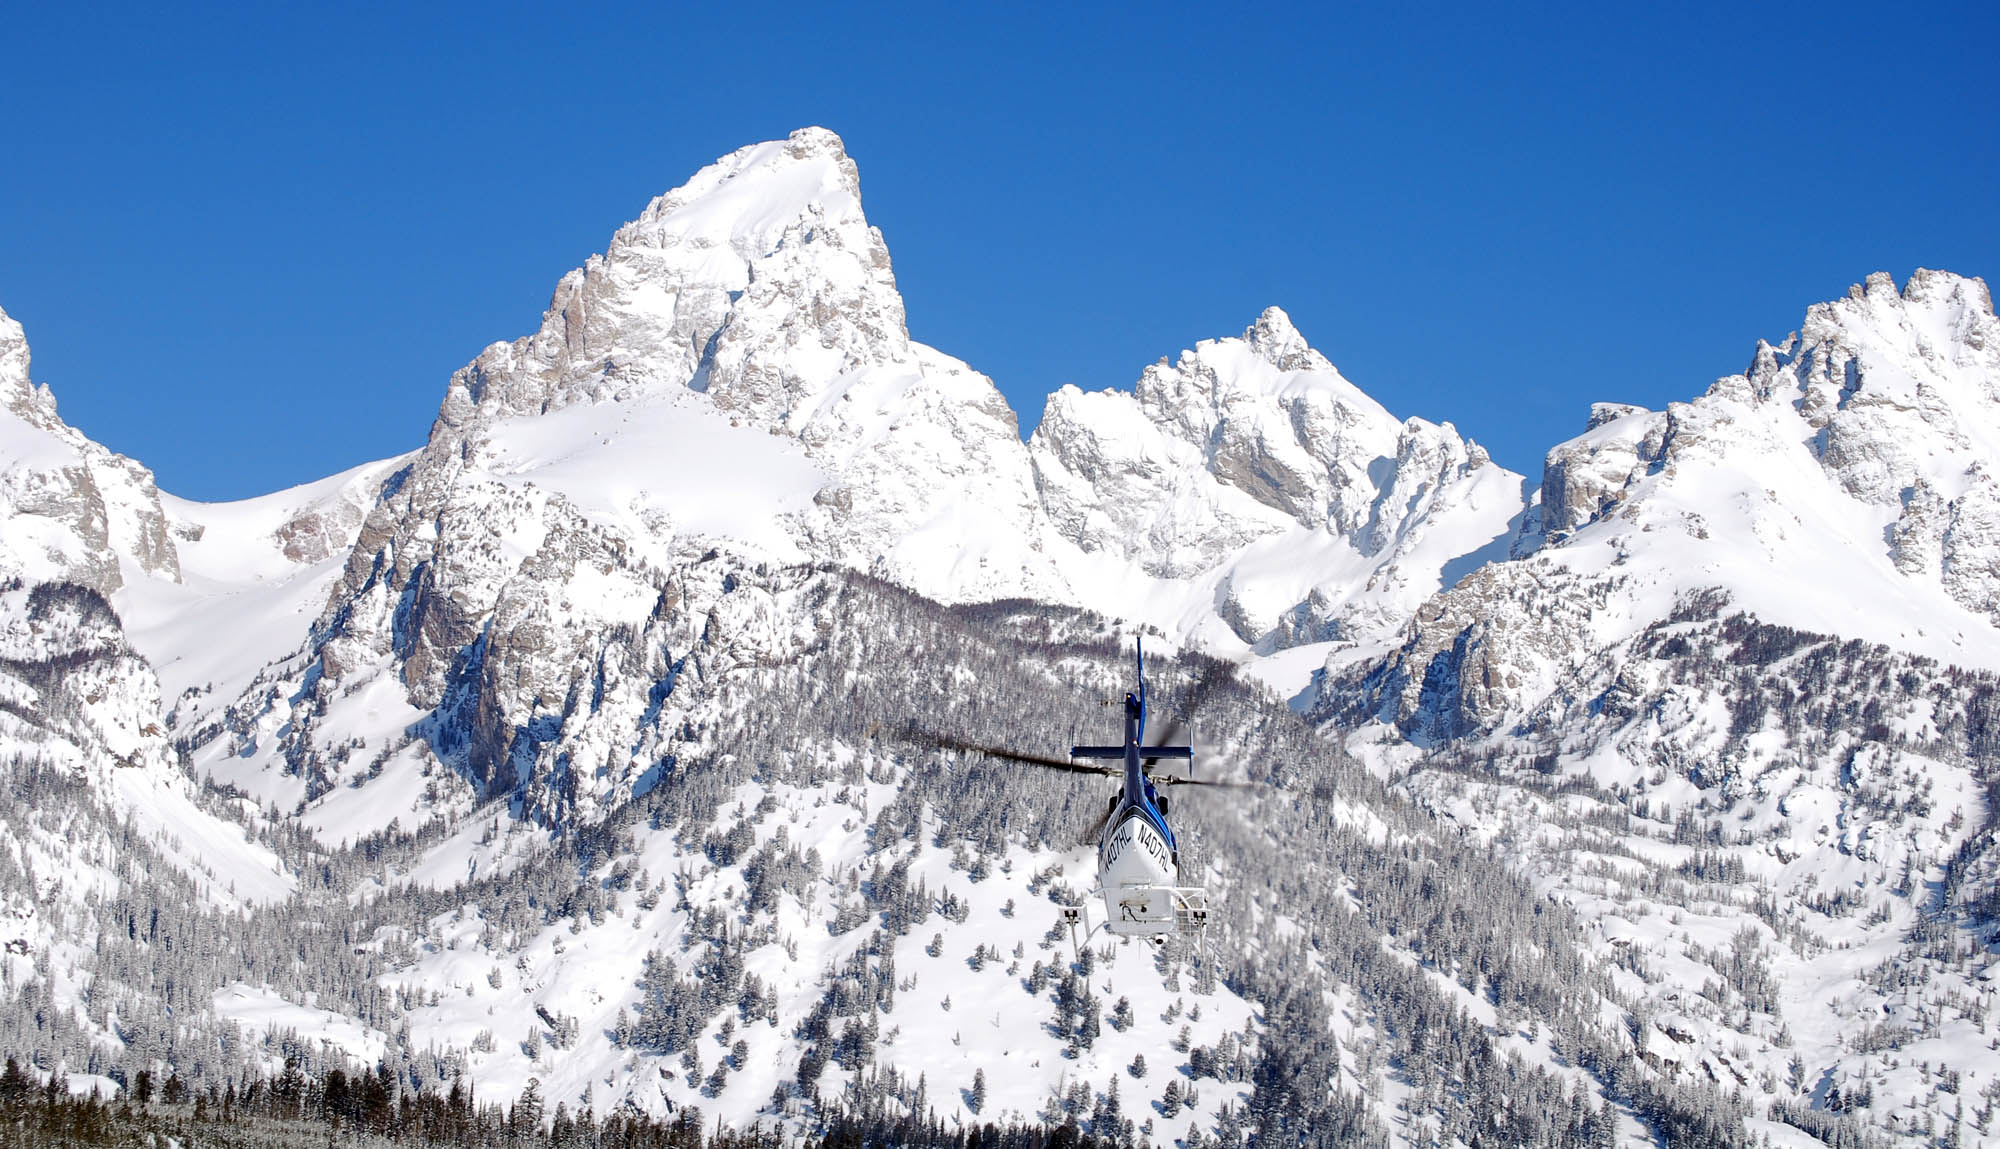 A helicopter heads toward Garnet Canyon in this file photo from April 2011 taken during a search for two lost skiers in Grand Teton National Park. Two snowboarders were rescued Feb. 13 after mistakenly riding into Granite Canyon. (National Park Service photo by Jackie Skaggs — click to enlarge)